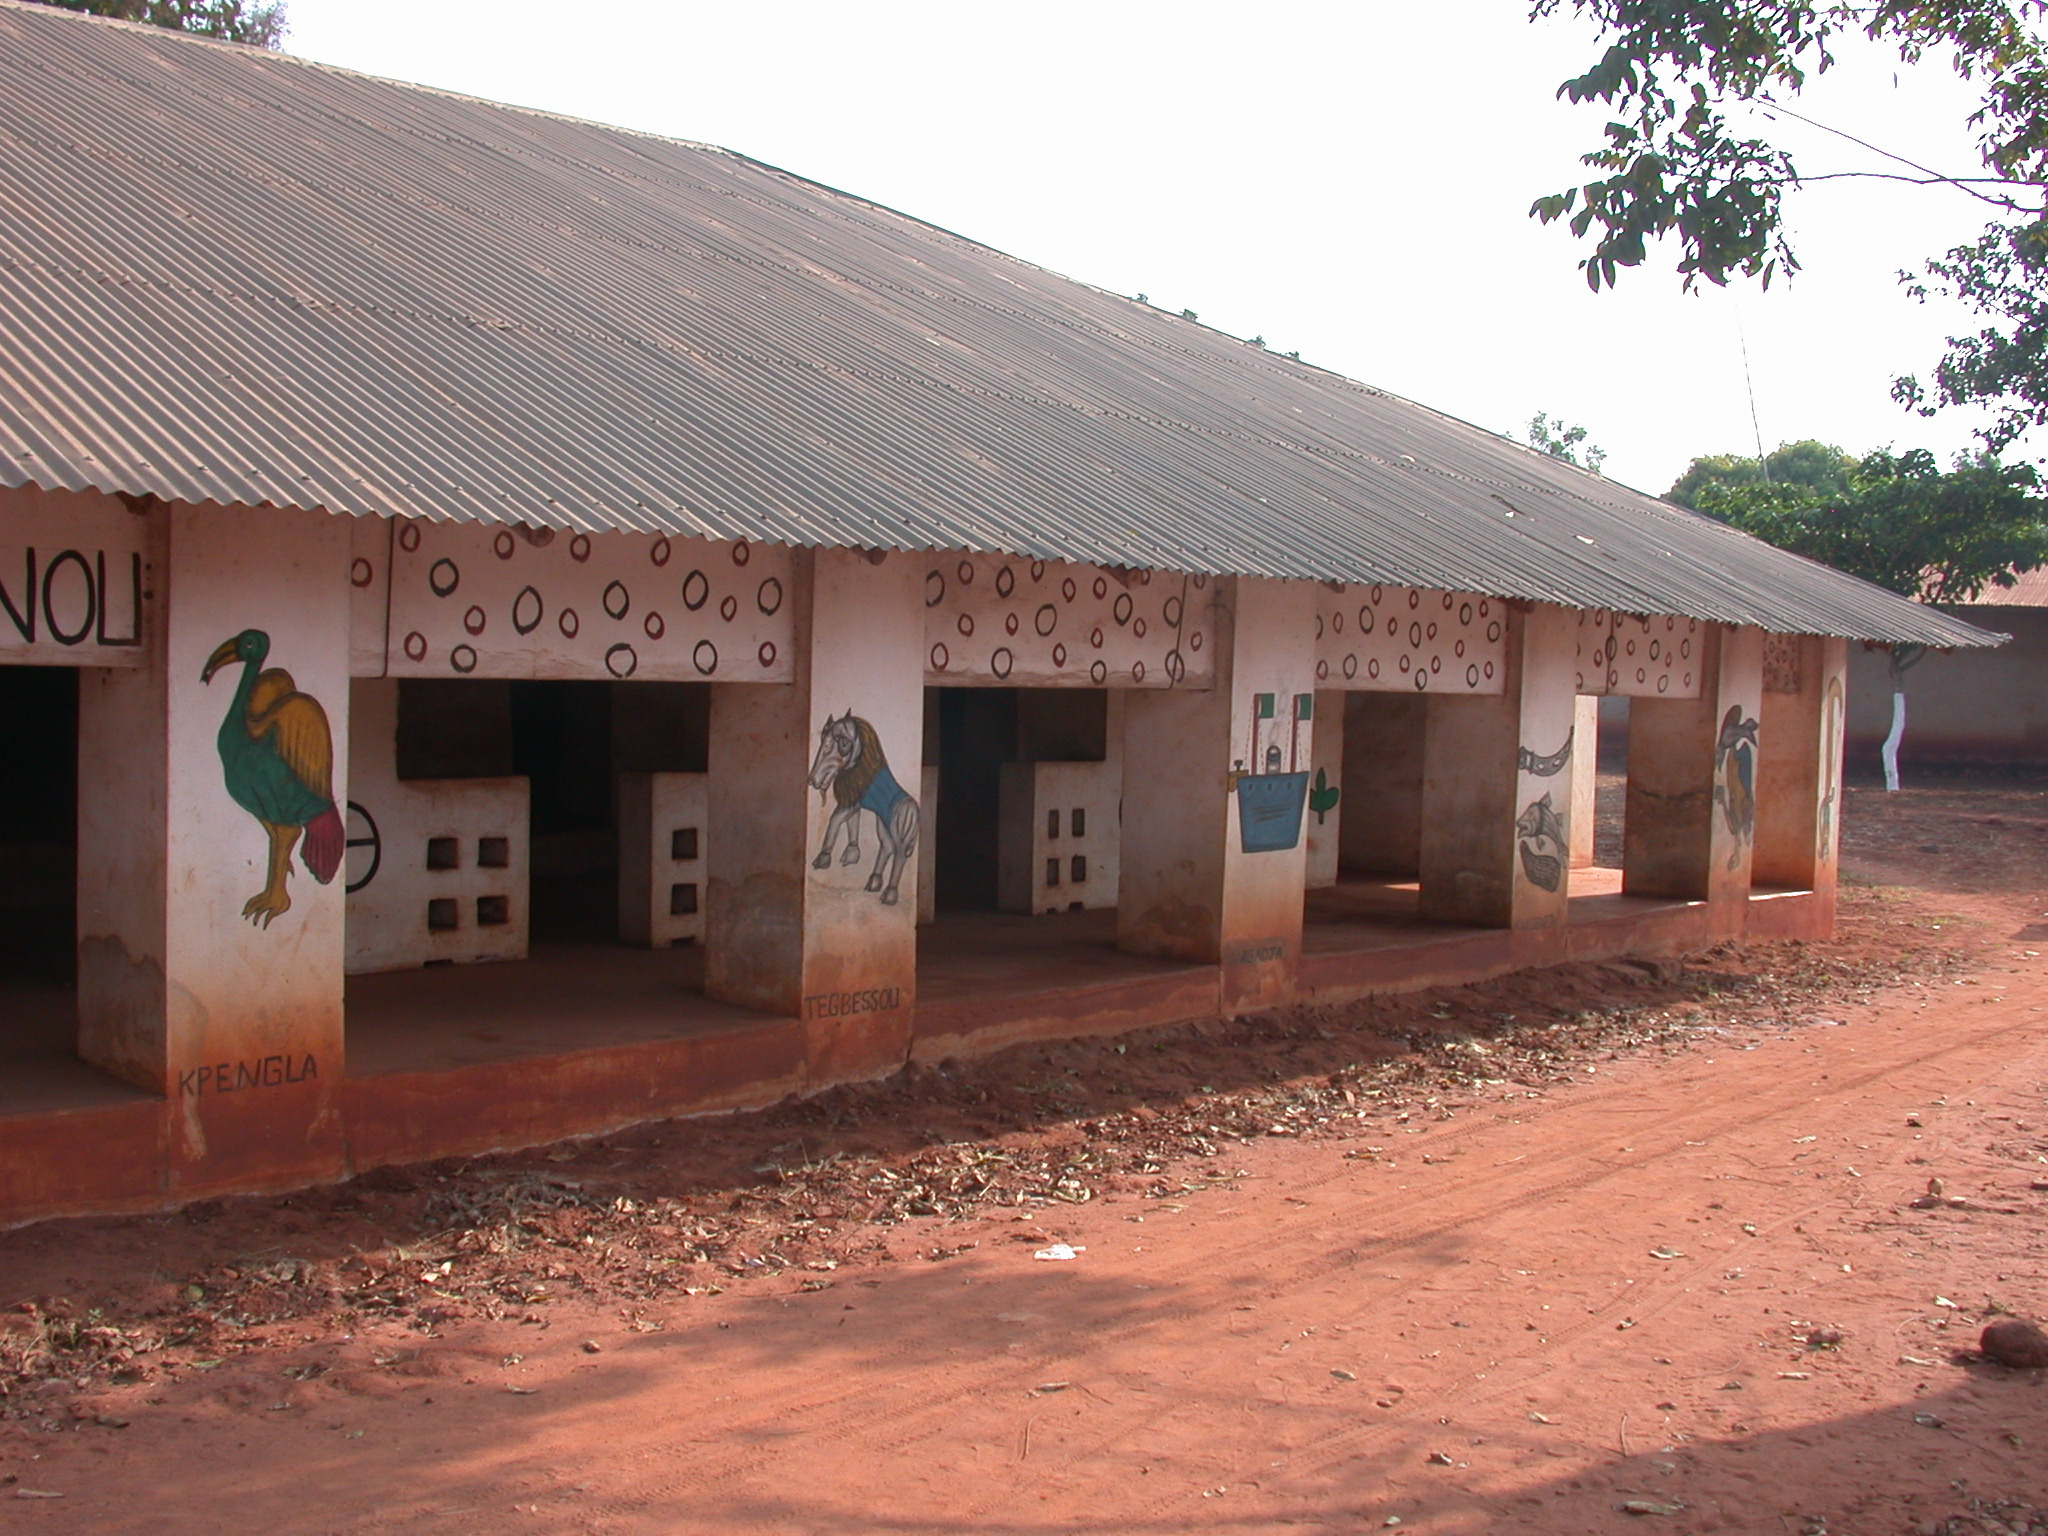 Right Side of Zomadonou Akaba Temple With Symbols of  Kpengla, Tegbessou,  and Agadja, Abomey, Benin